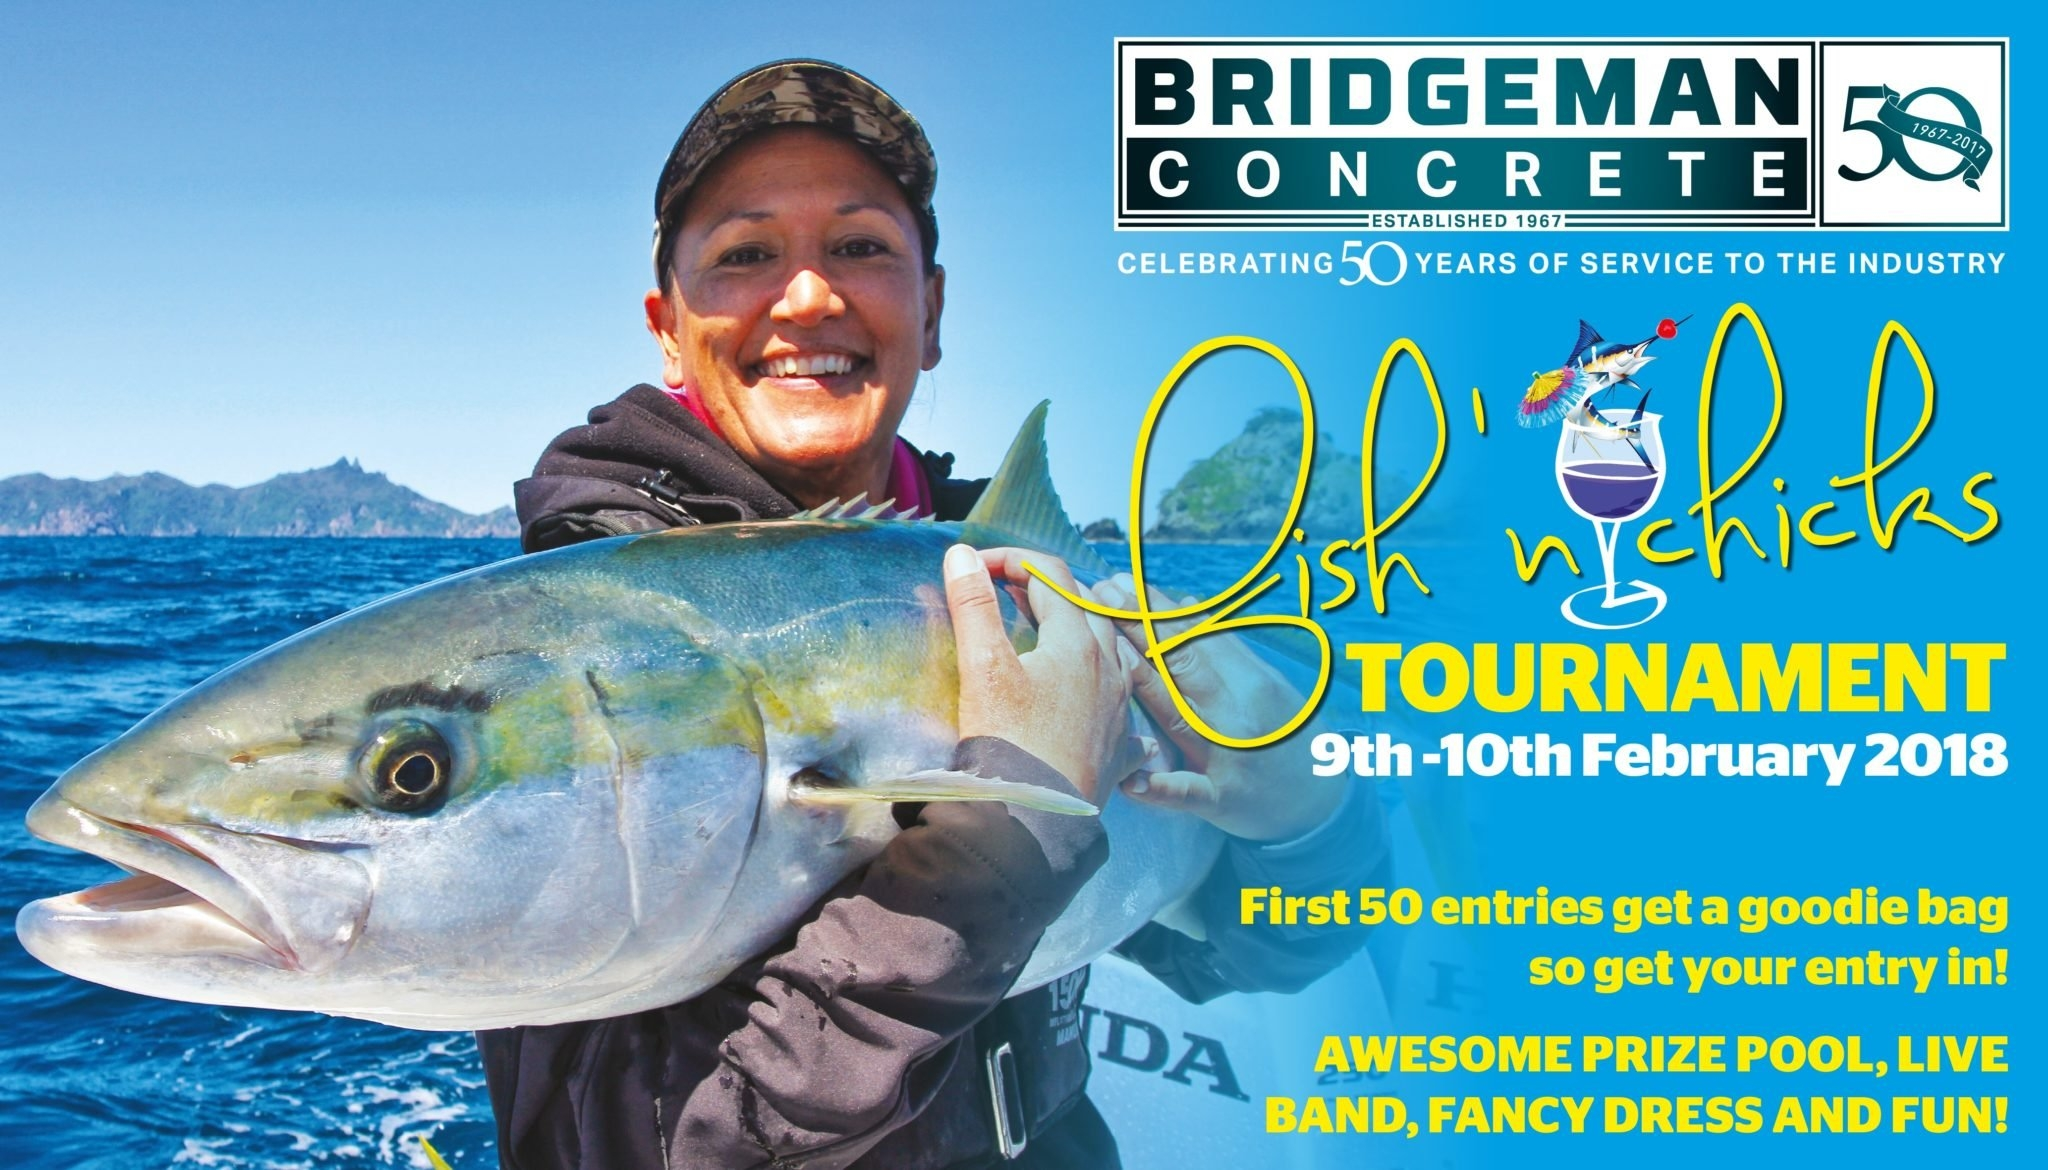 Bridgeman Concrete Fish N Chicks Tournament 2018 - Tauranga Sport Fish N Chix Calendar 2019